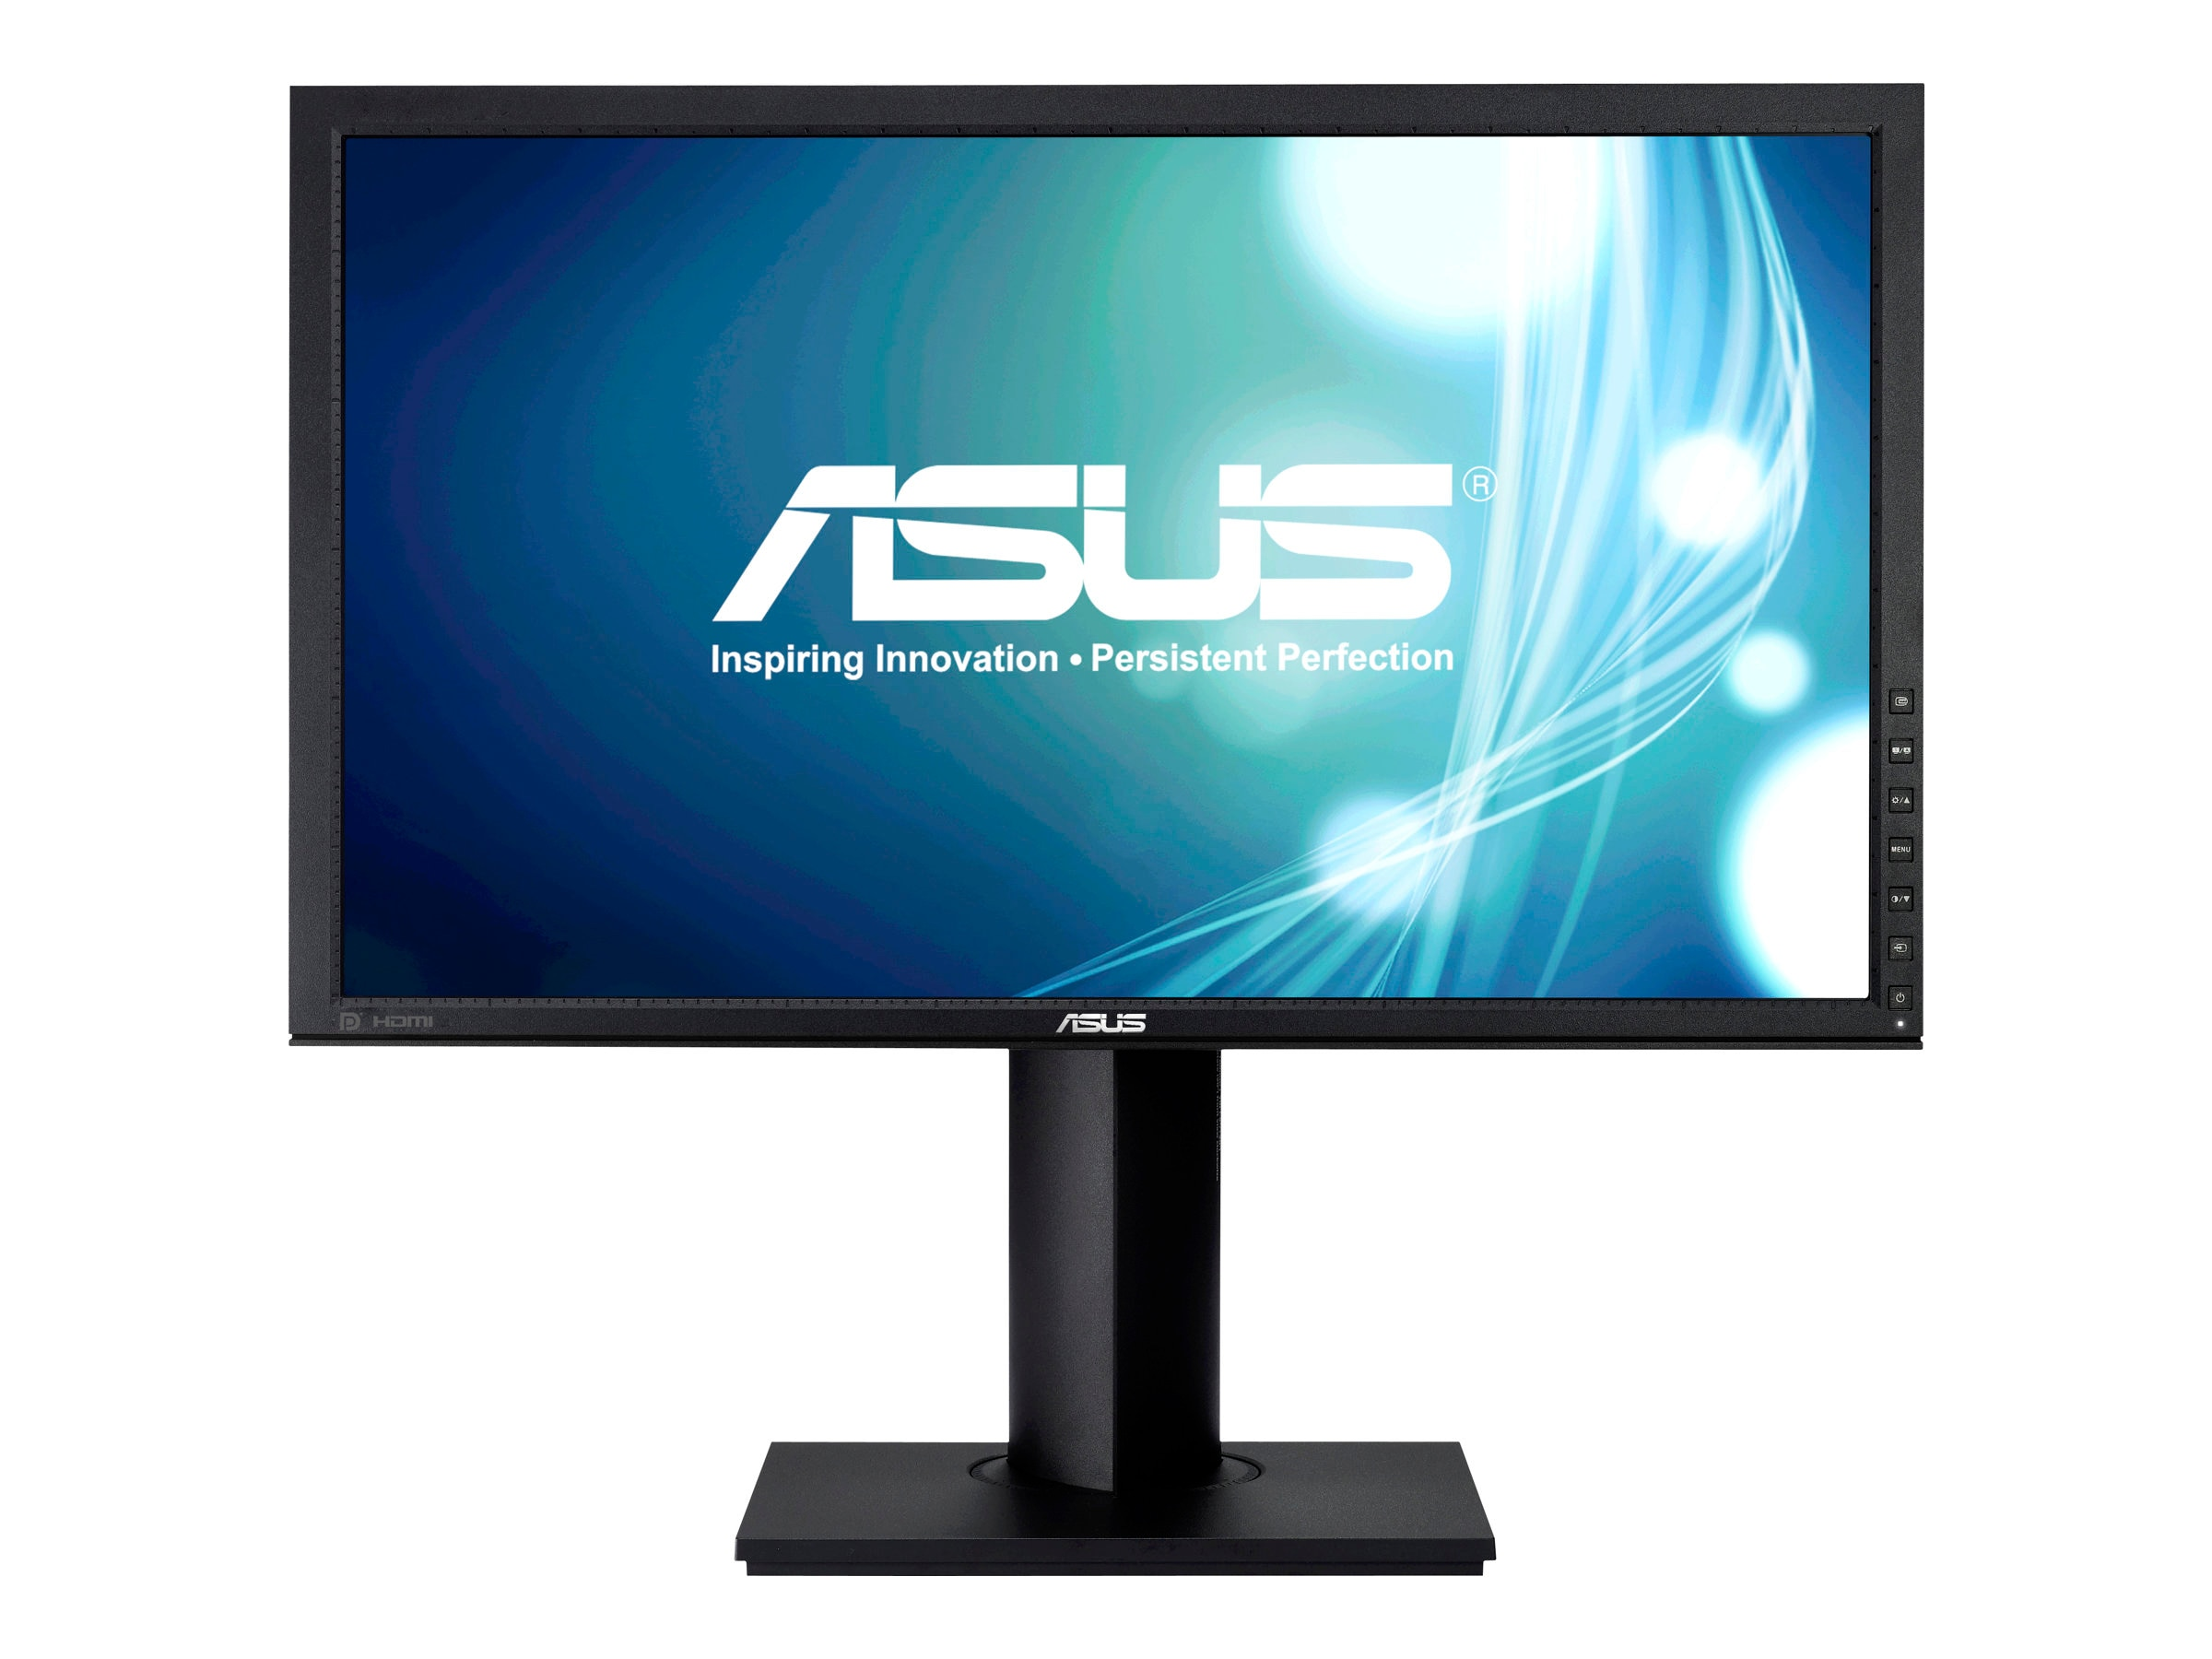 Asus 23 PB238Q Full HD LED-LCD Monitor, Black